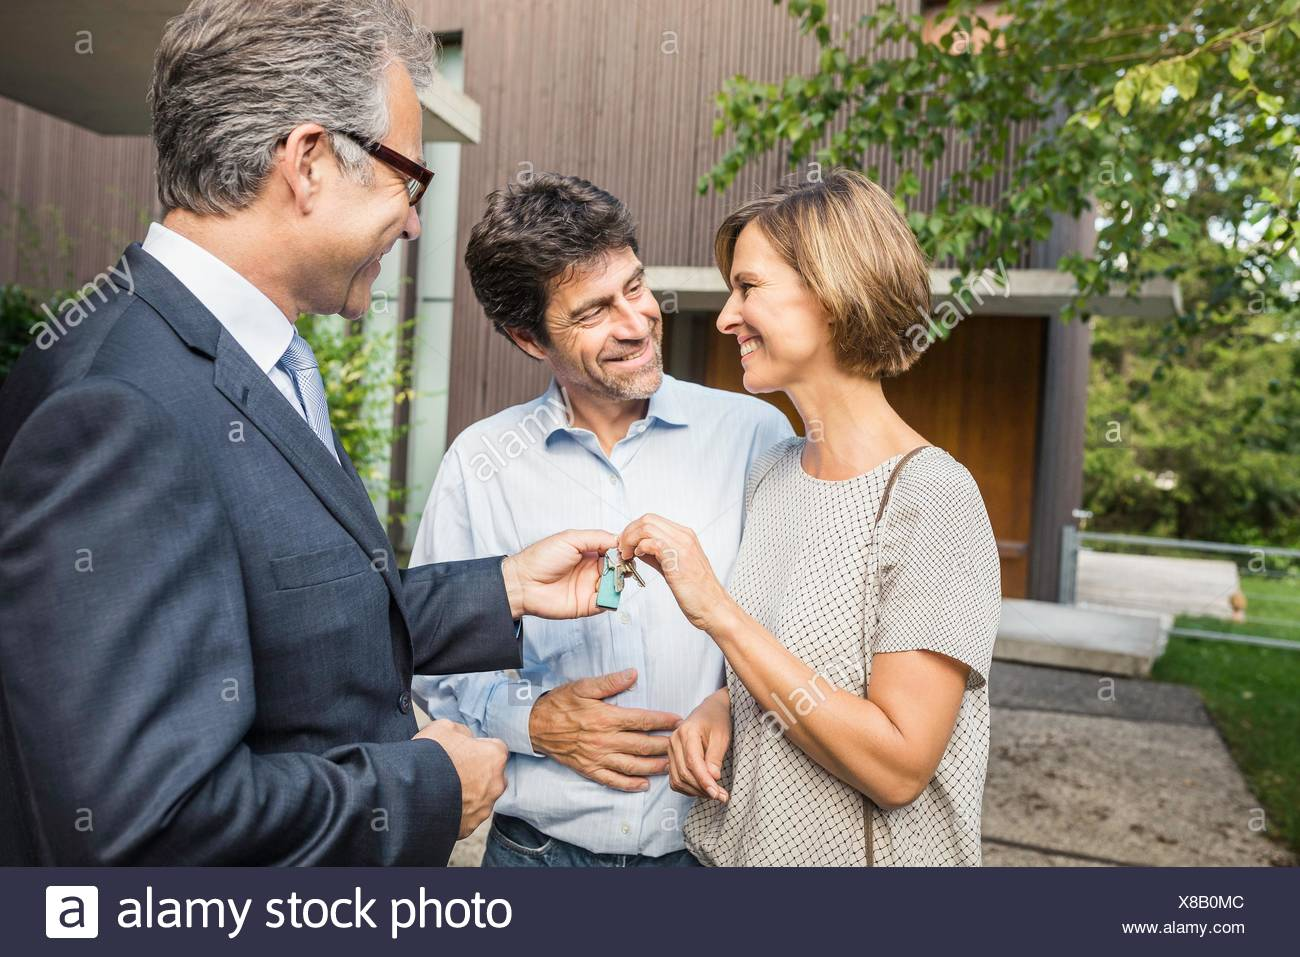 Estate agent handing keys to mature couple at new house - Stock Image